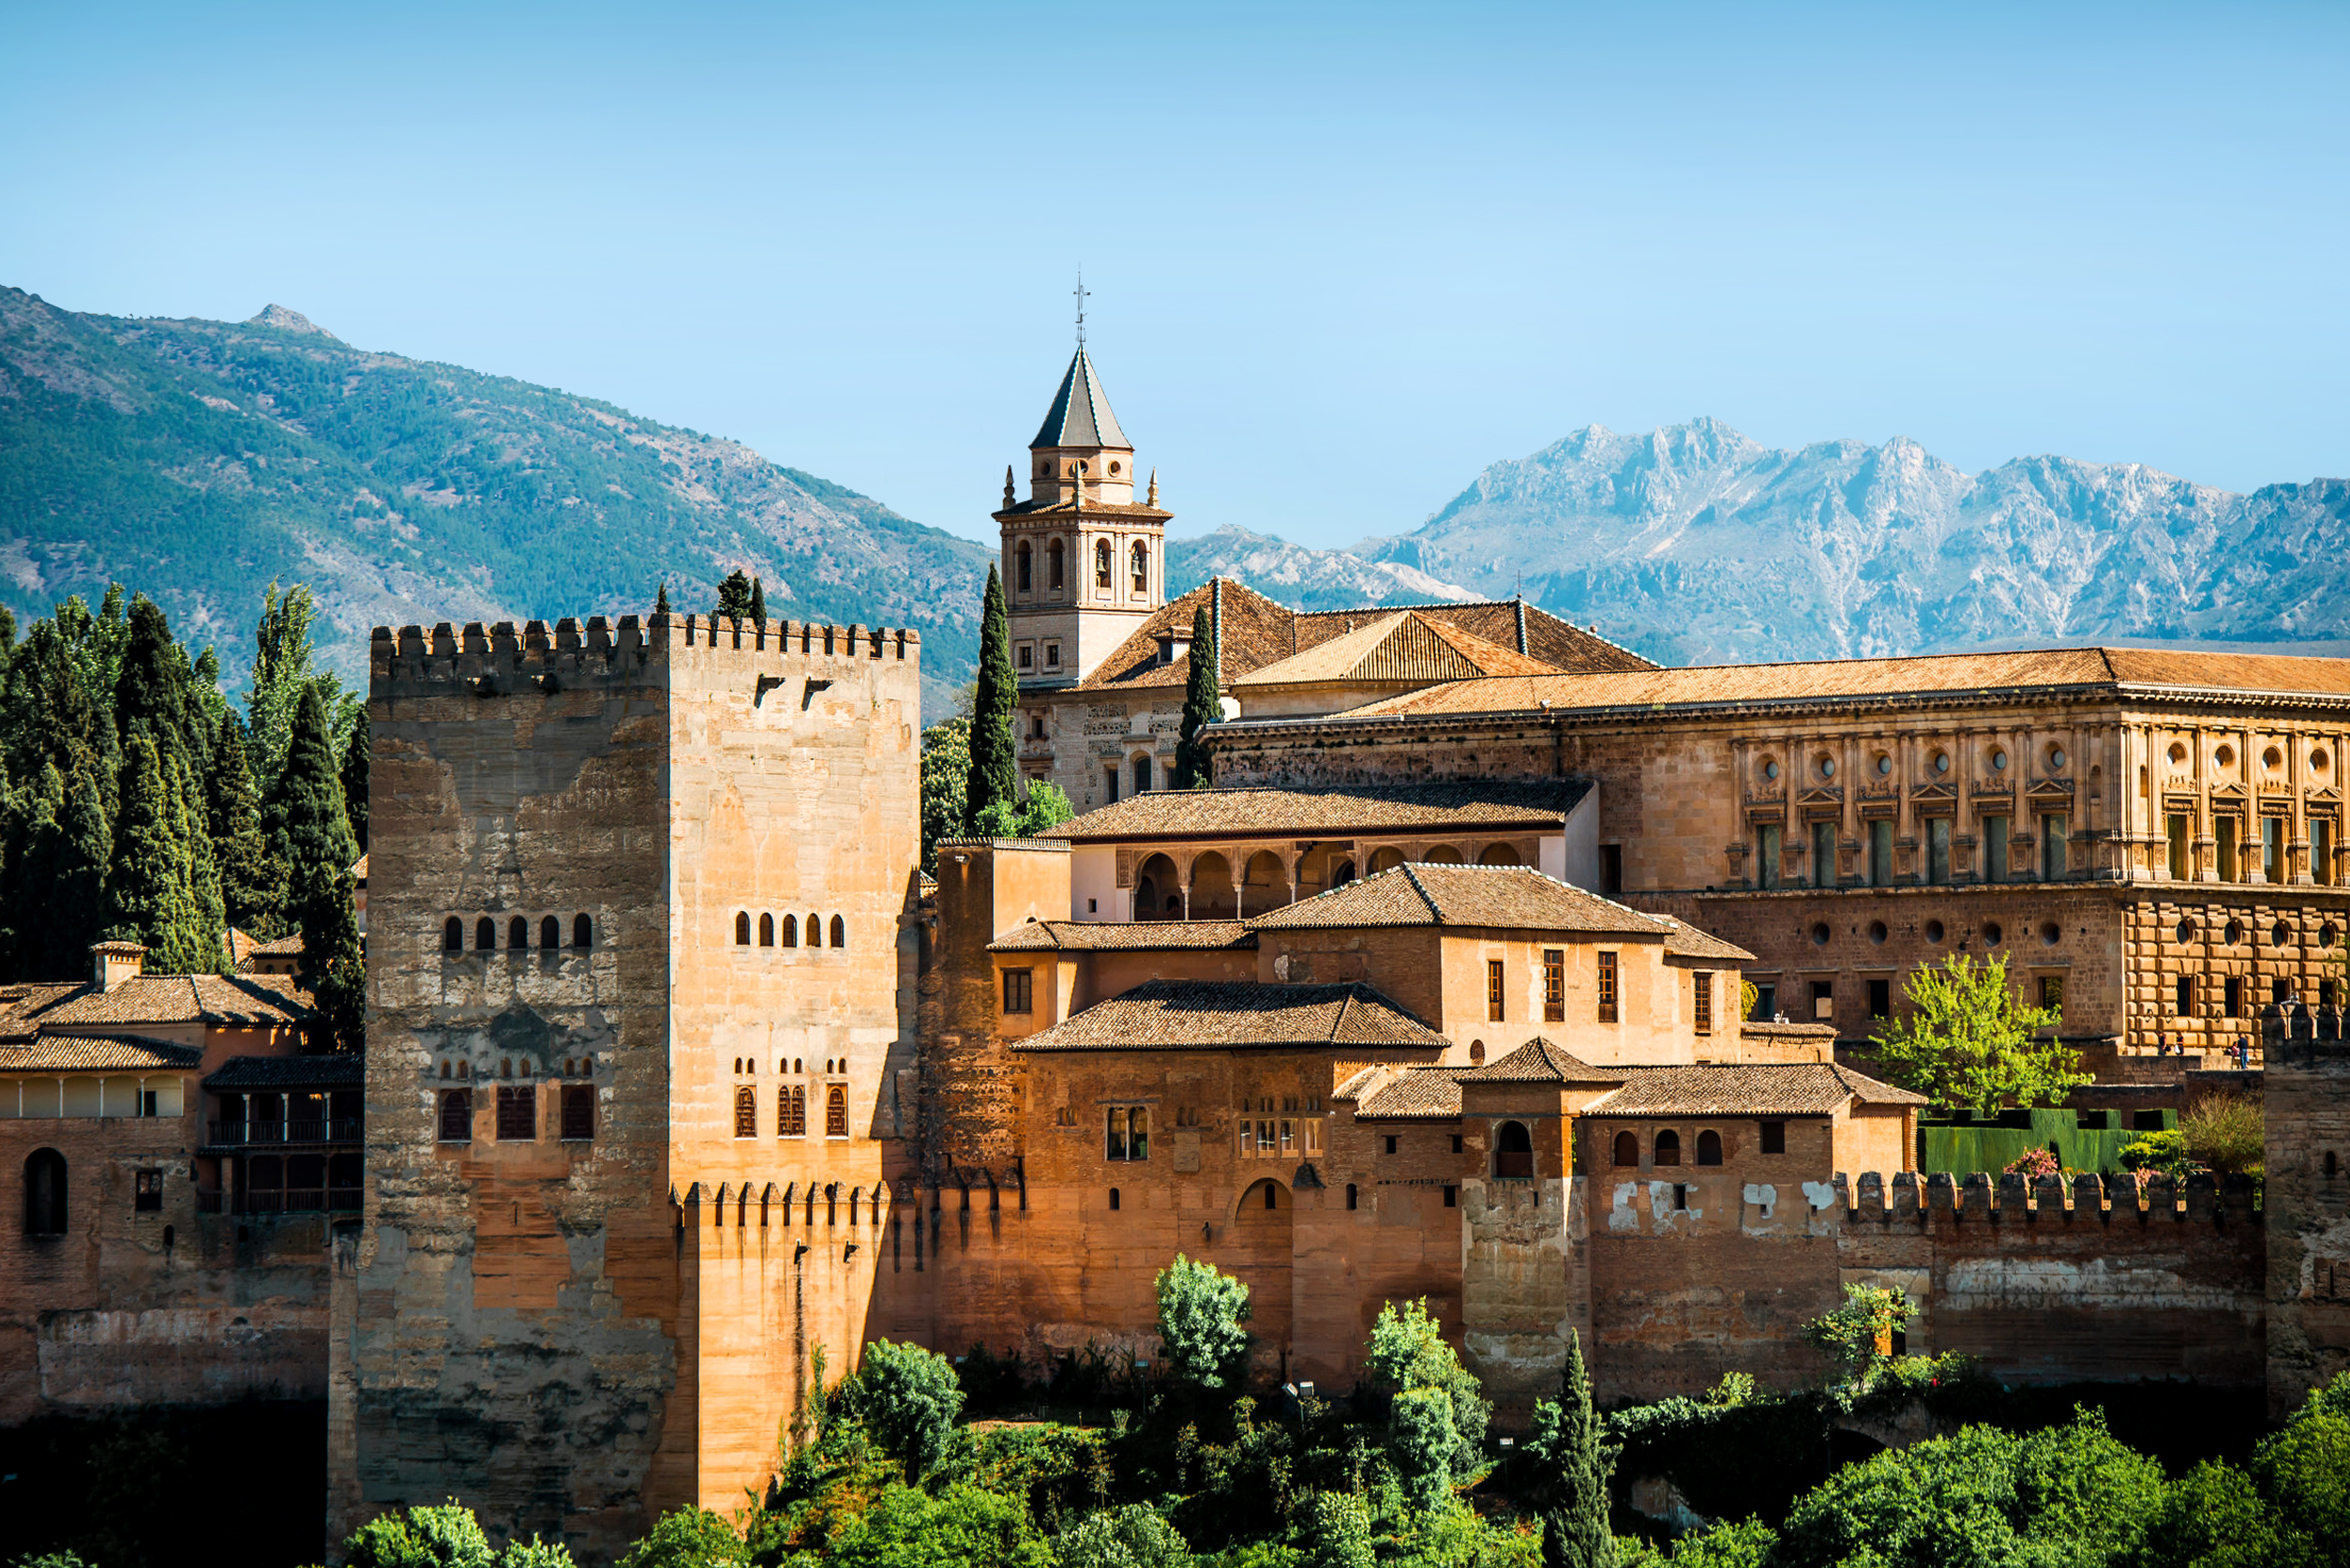 A Brief History of the Alhambra Palace